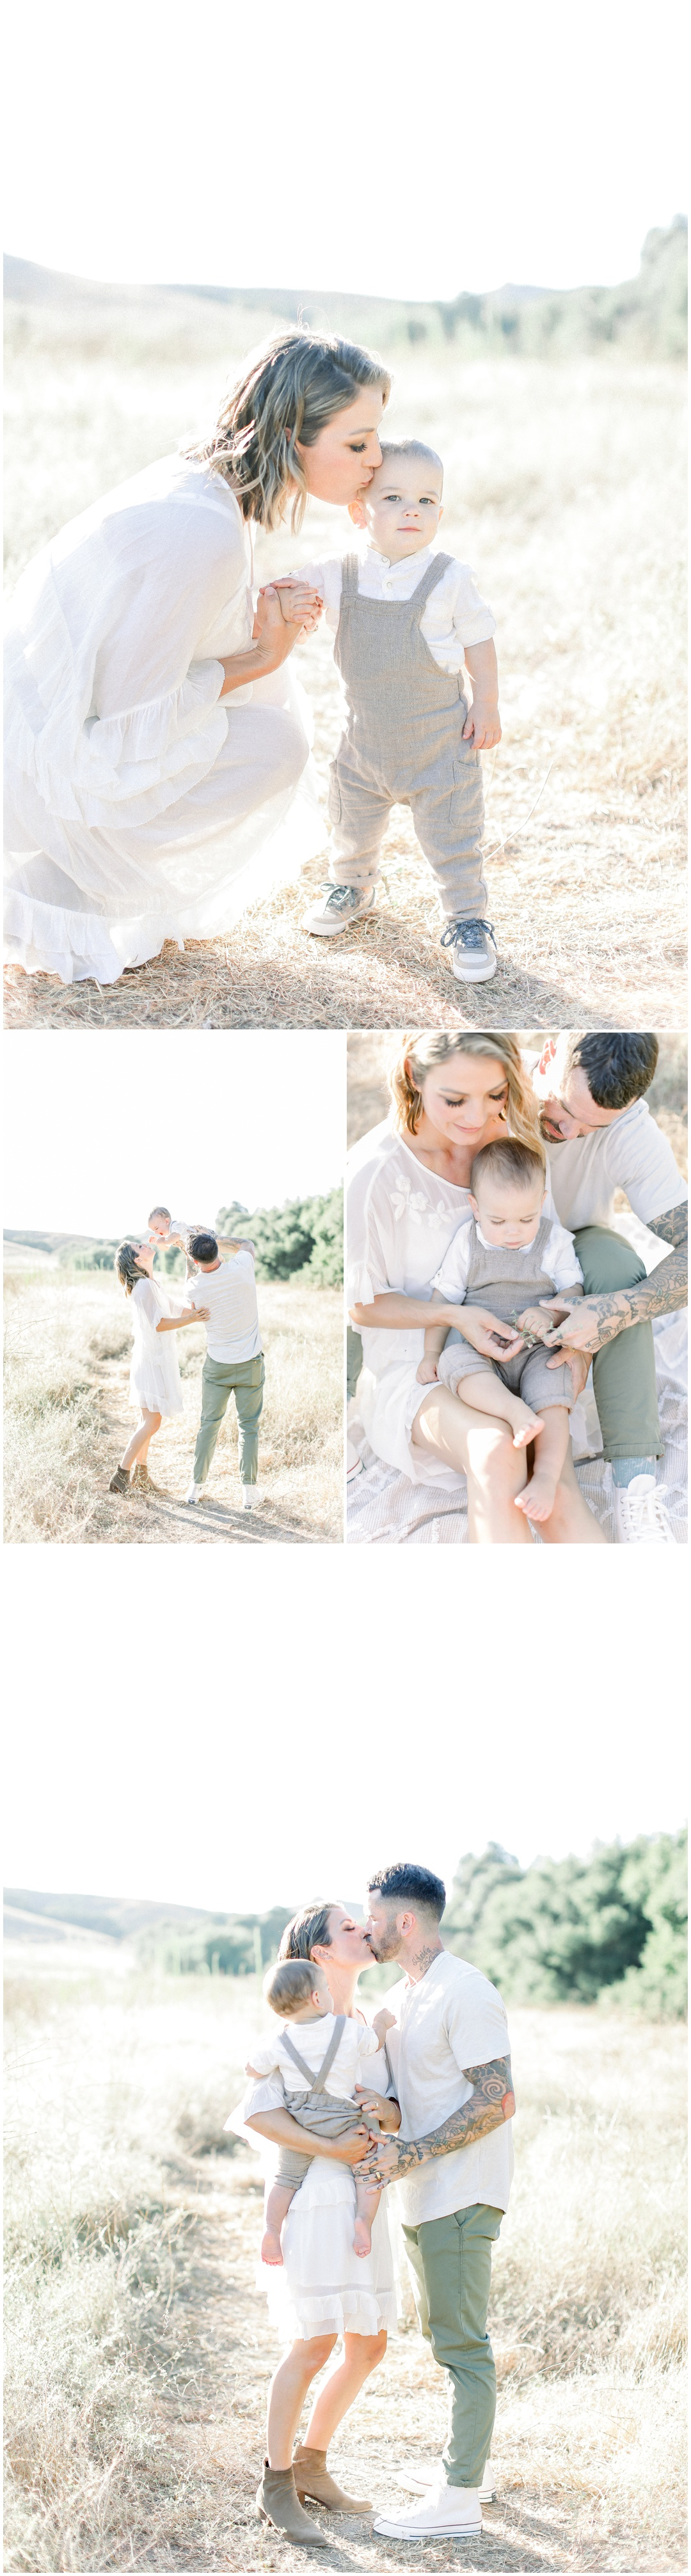 Newport_Beach_Family_Session_Orange_County_Family_Photographer_Thomas_Riley_Wilderness_Park_Carrie_Stotts_Sean_Stotts__4331.jpg